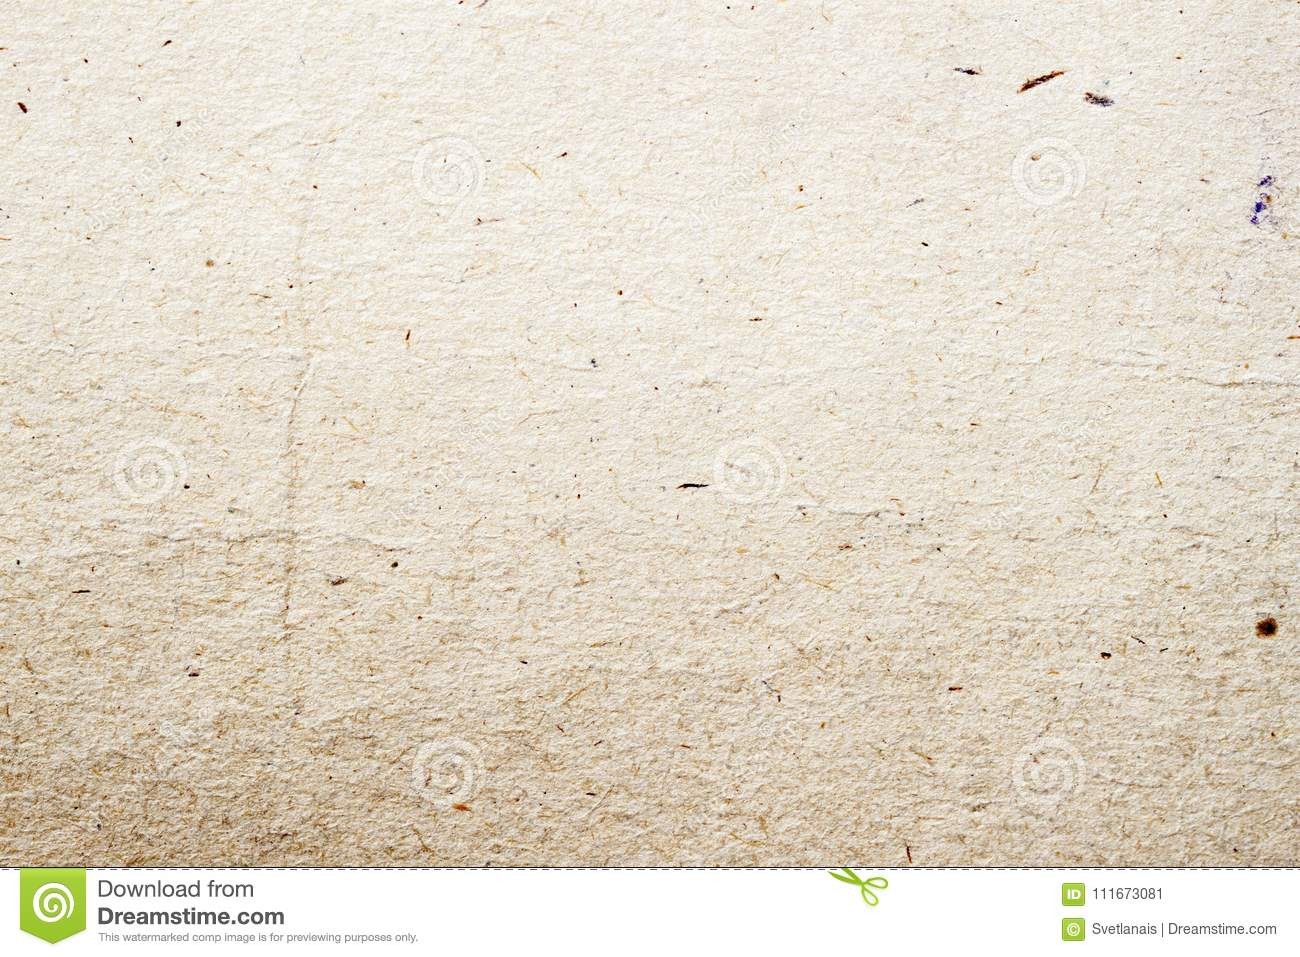 Paper texture organic cardboard background close-up. Grunge vintage ecological paper surface with cellulose, fragments